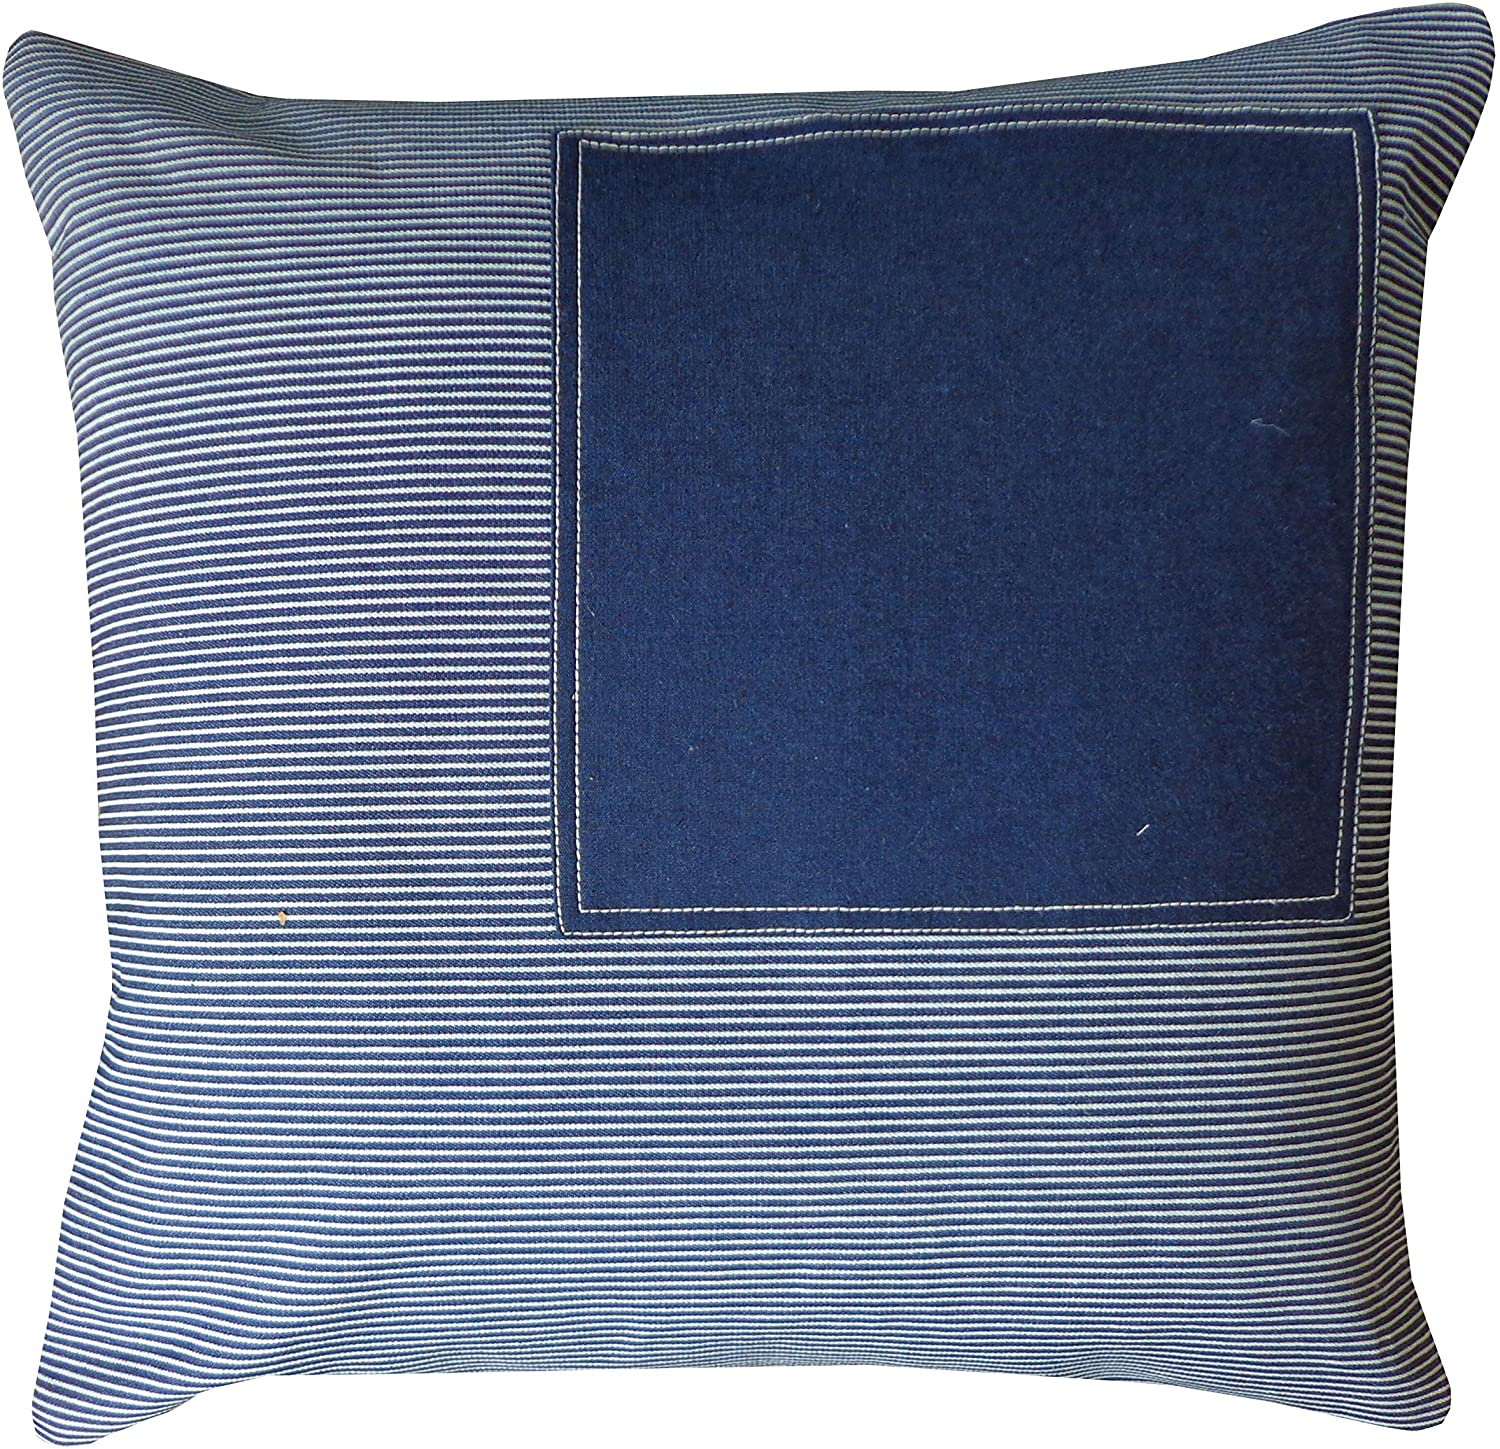 Handmade Window Stripe Navy Decorative Pillow Blue Geometric Bohemian Eclectic Cotton One